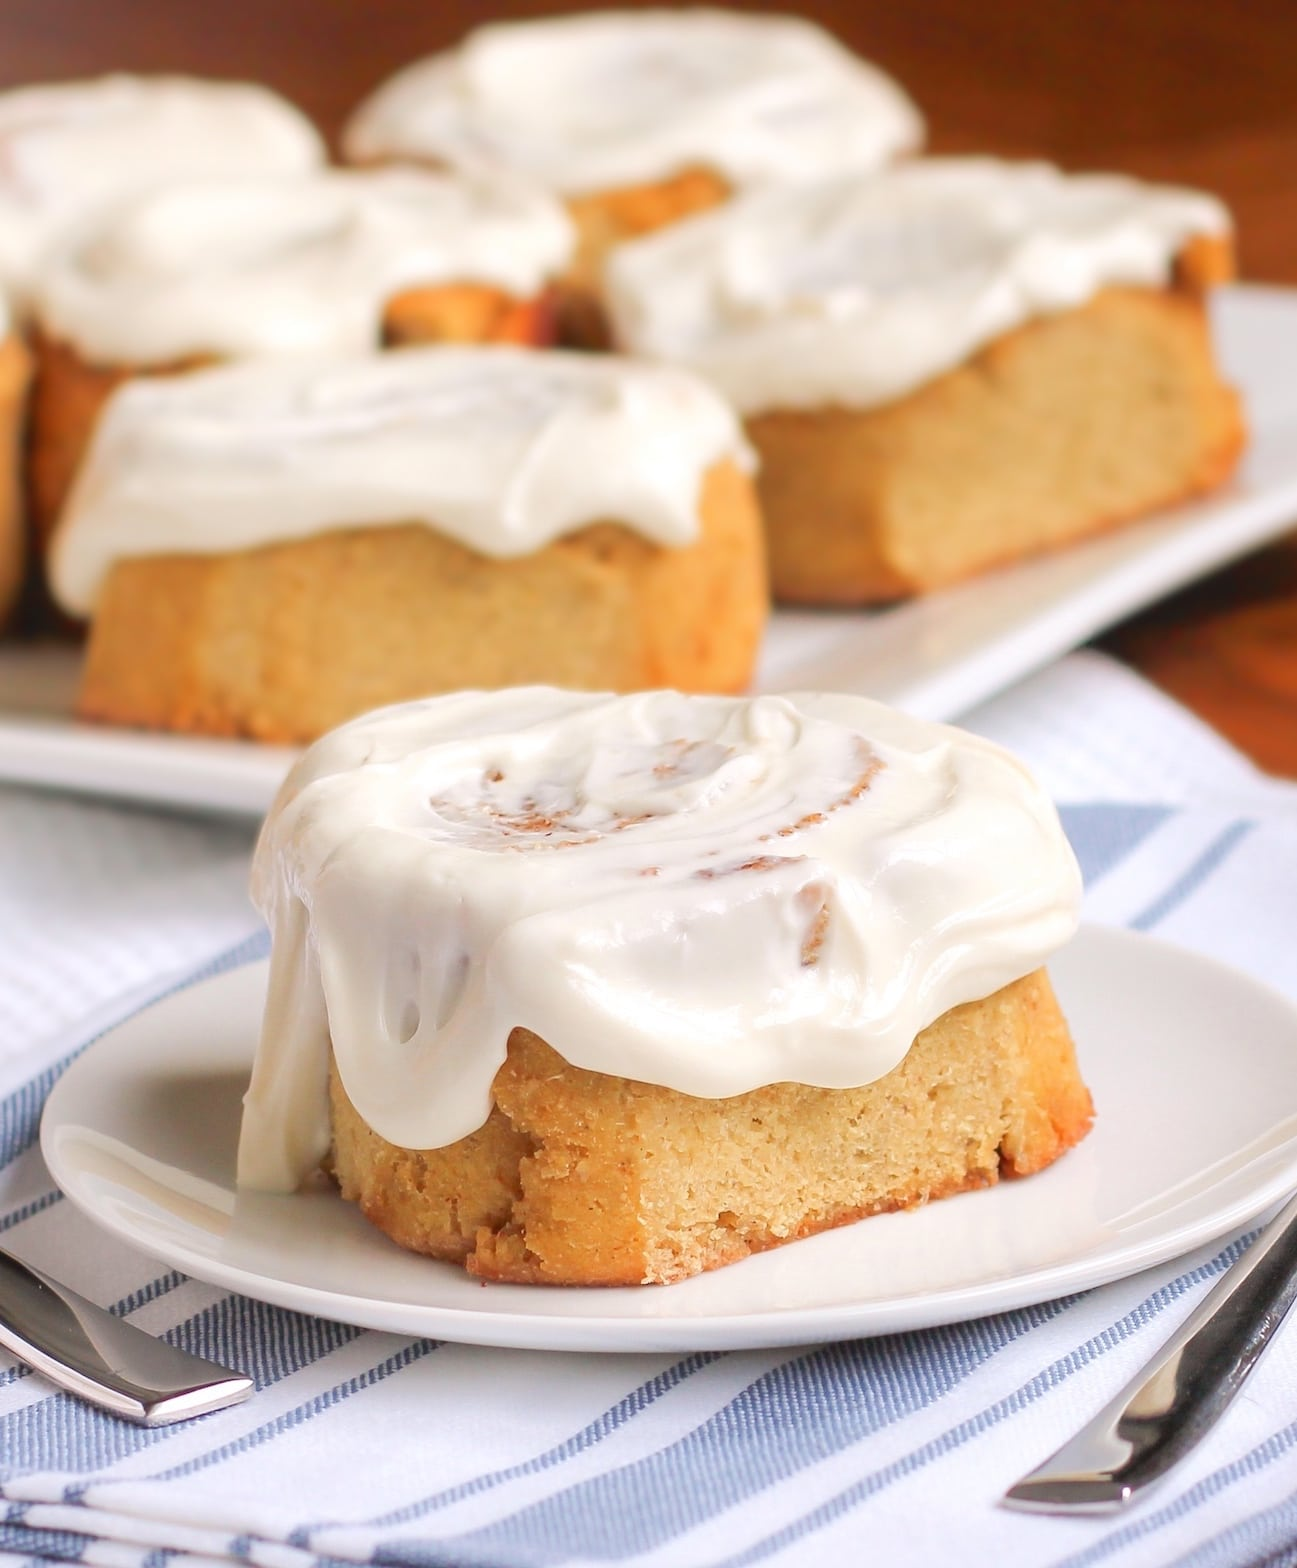 MAGIC -- that's what these Healthy Cinnamon Rolls are!  These pillowy treats are sweet, buttery and tender, you'd never know they're all natural, refined sugar free, low carb, reduced fat, high fiber, high protein and gluten free! These gluten free cinnamon rolls are one helluva baking miracle.